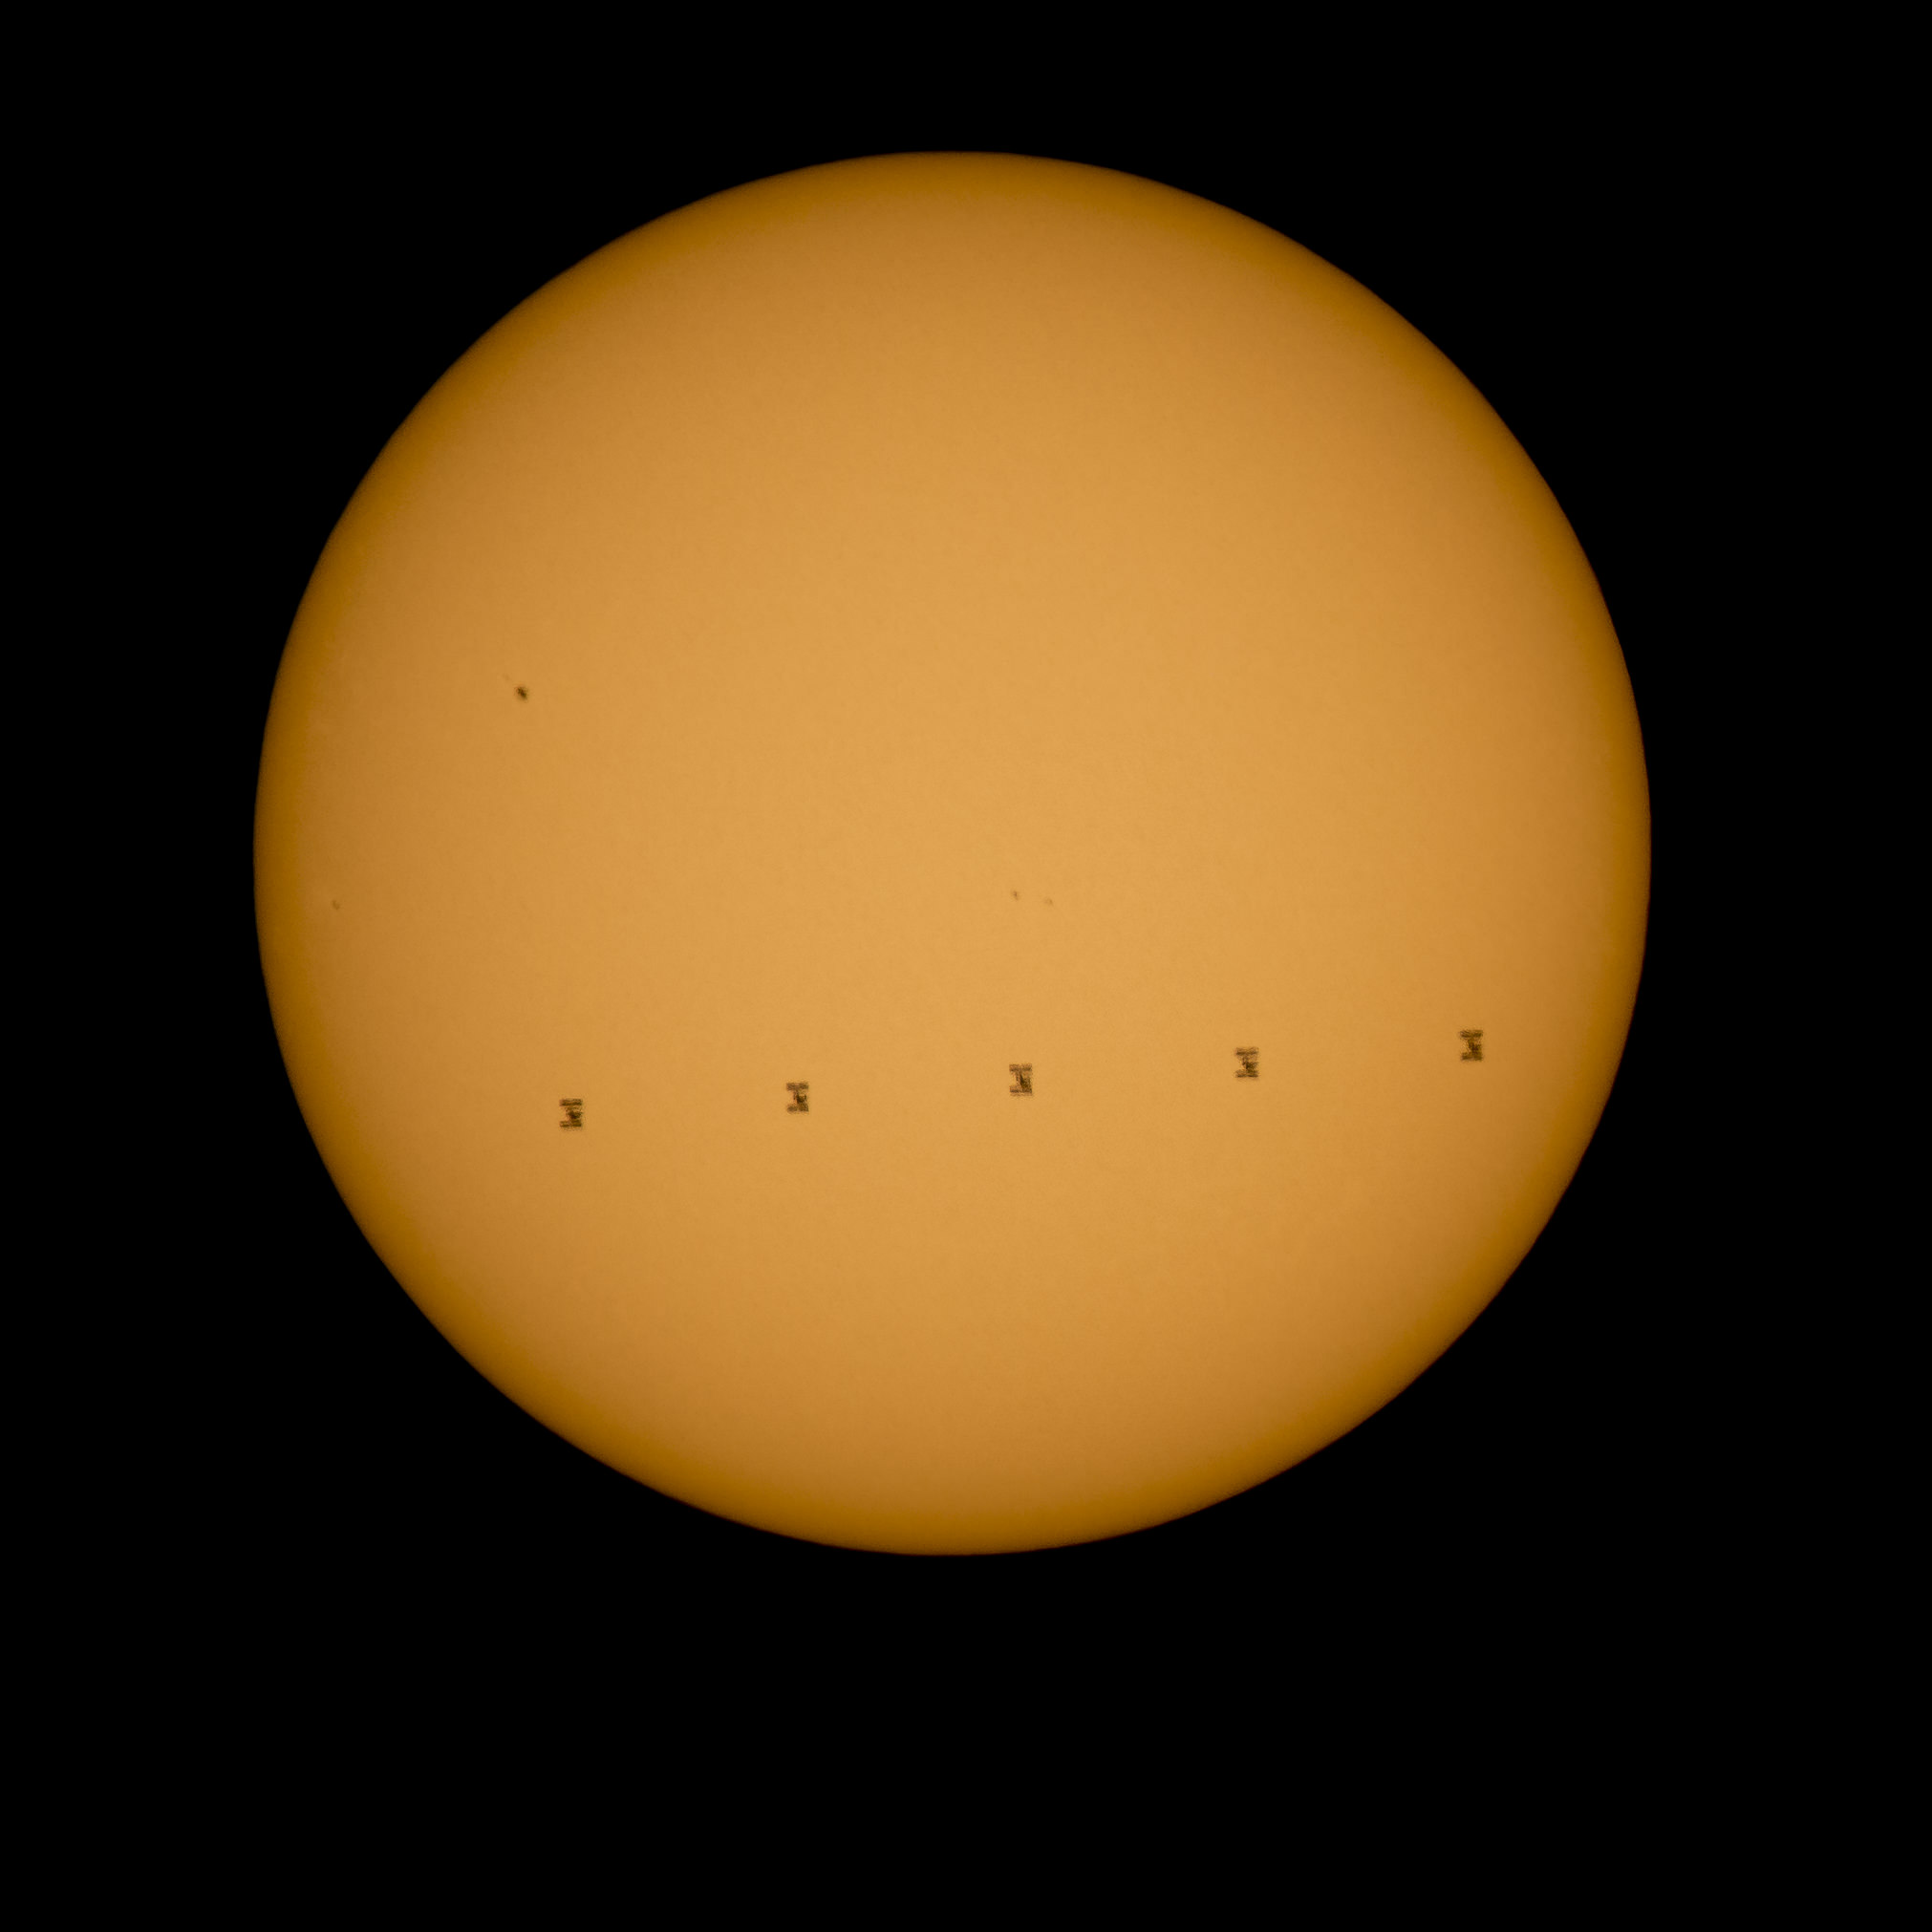 The International Space Station transits the sun on Sunday, Sept. 6, 2015 with an enhanced crew of nine, as seen from Shenandoah National Park, Front Royal, VA in this composite image by NASA photographer Bill Ingalls.  Credit: NASA/Bill Ingalls